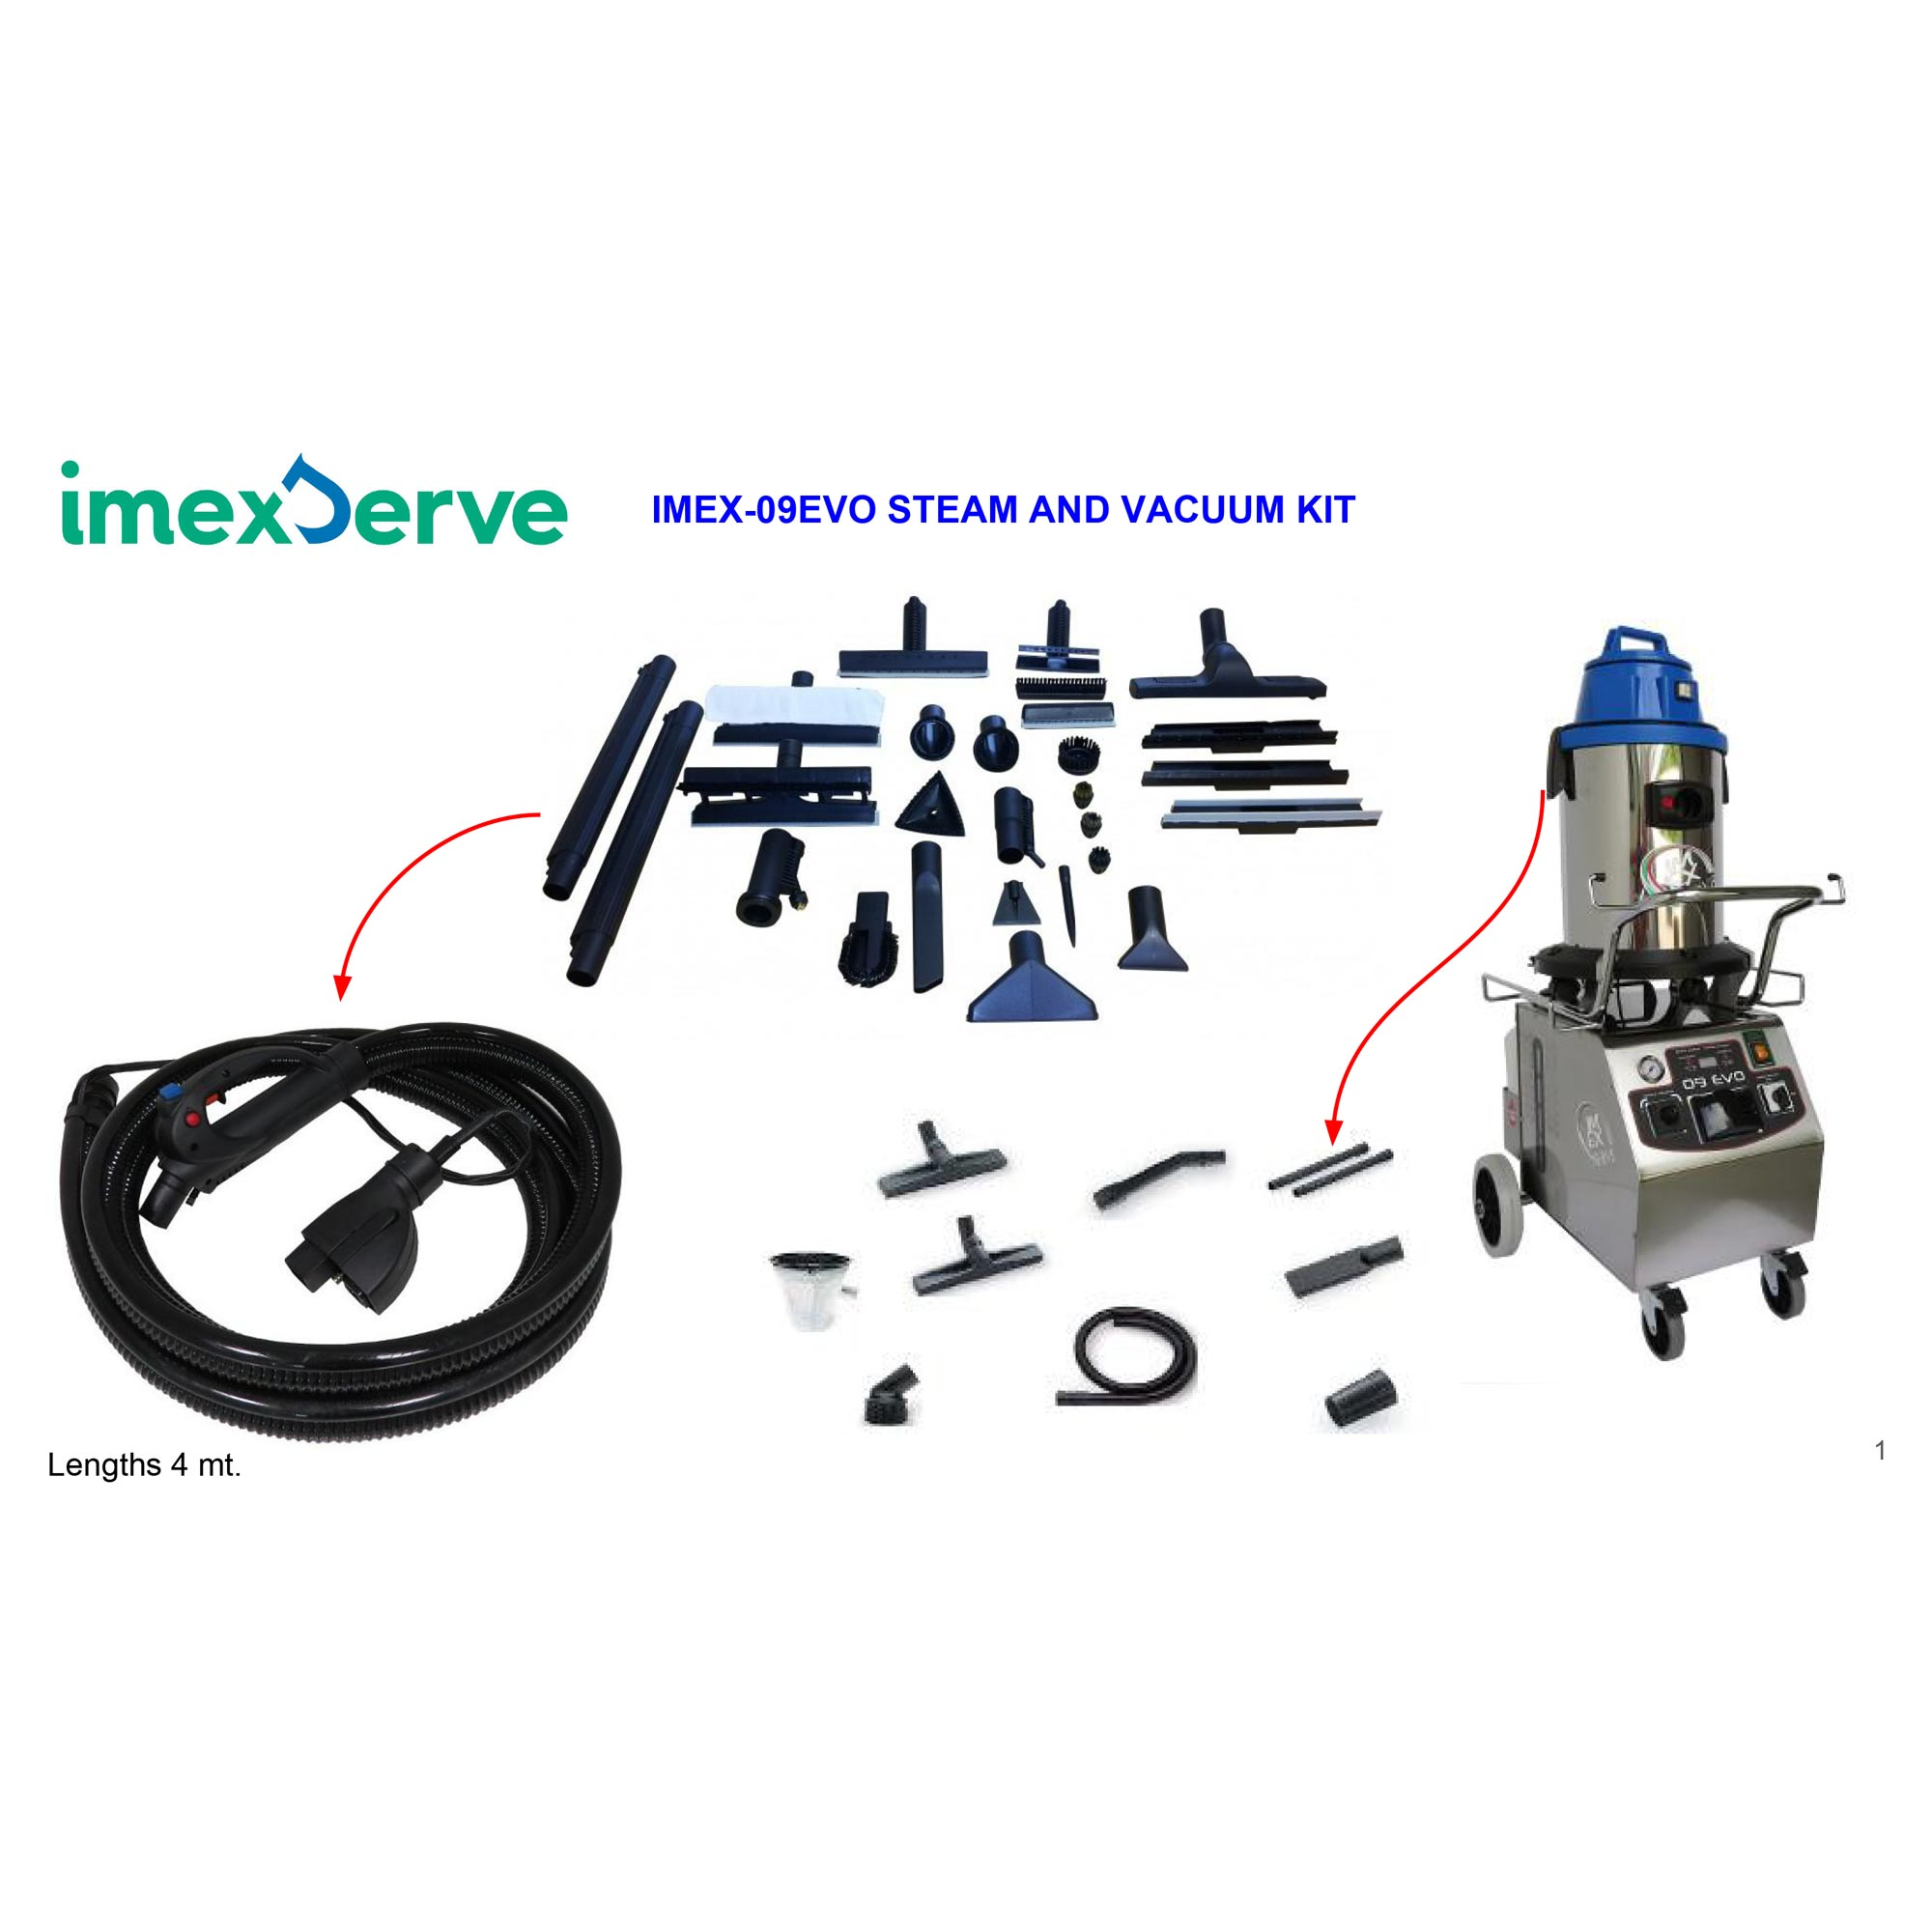 Imexserve 09Evo Steam and Vacuum Vapor Cleaner With Accessories 3400 ...